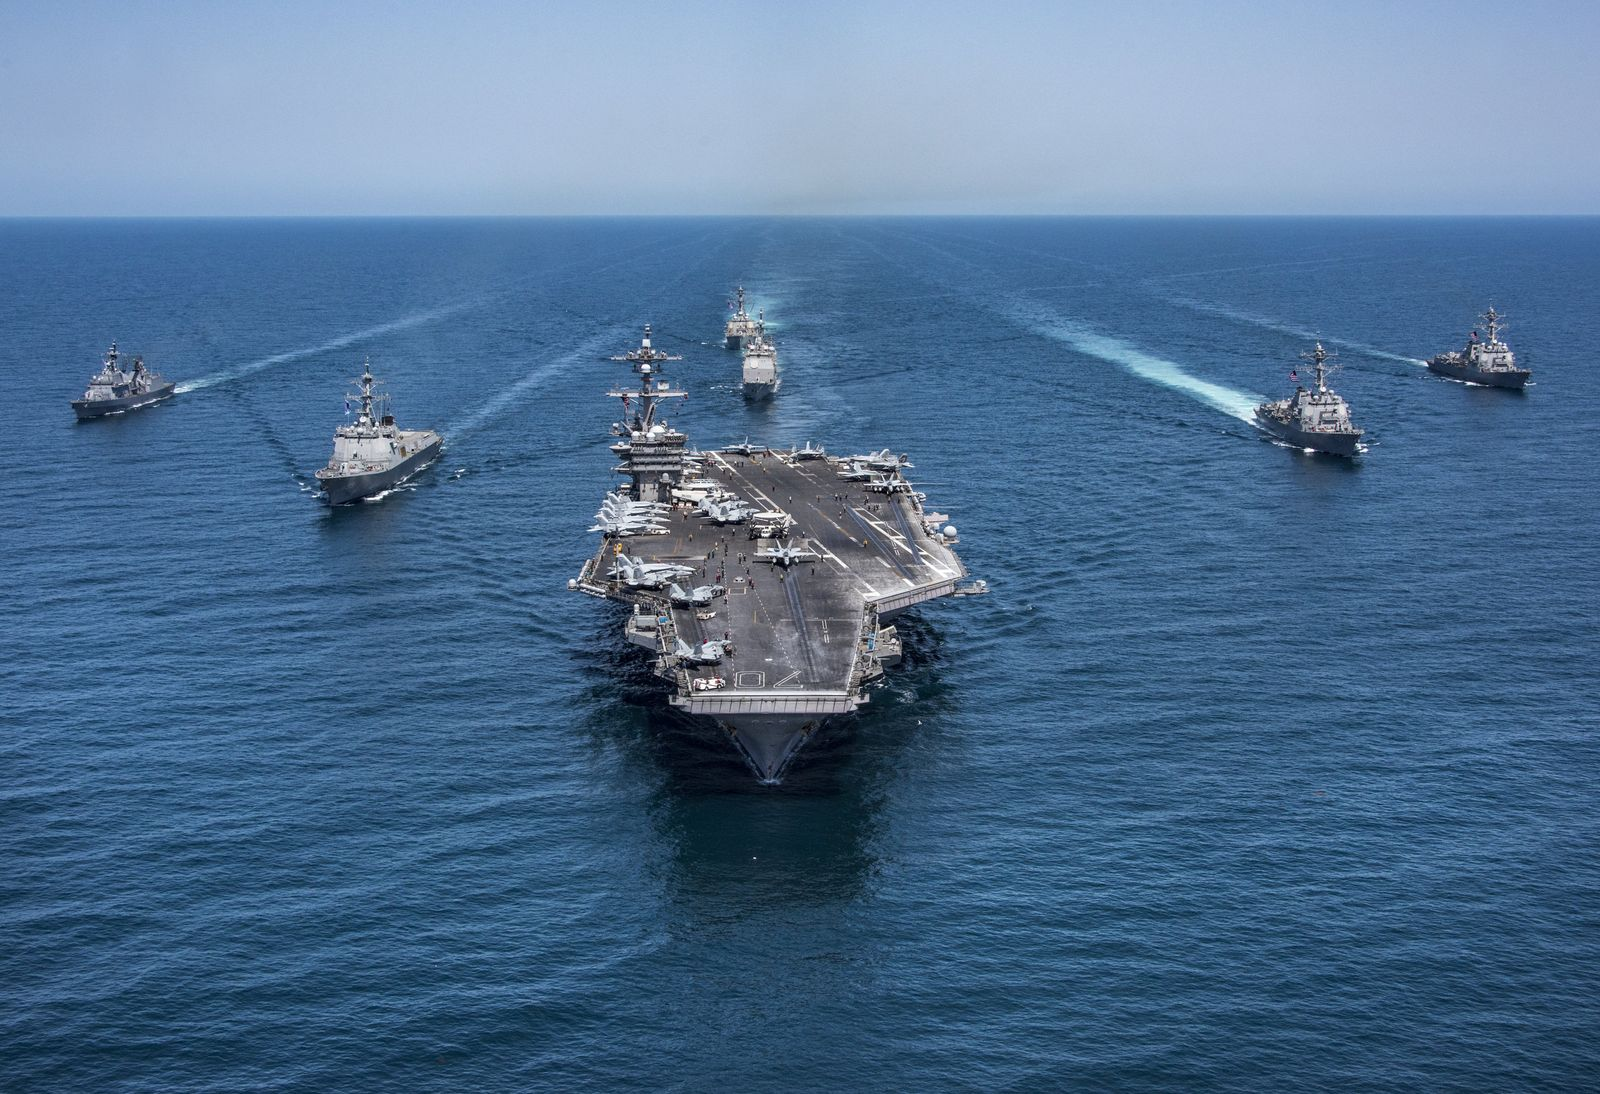 South Korean naval destroyers sail with the U.S. Navy aircraft carrier USS Carl Vinson